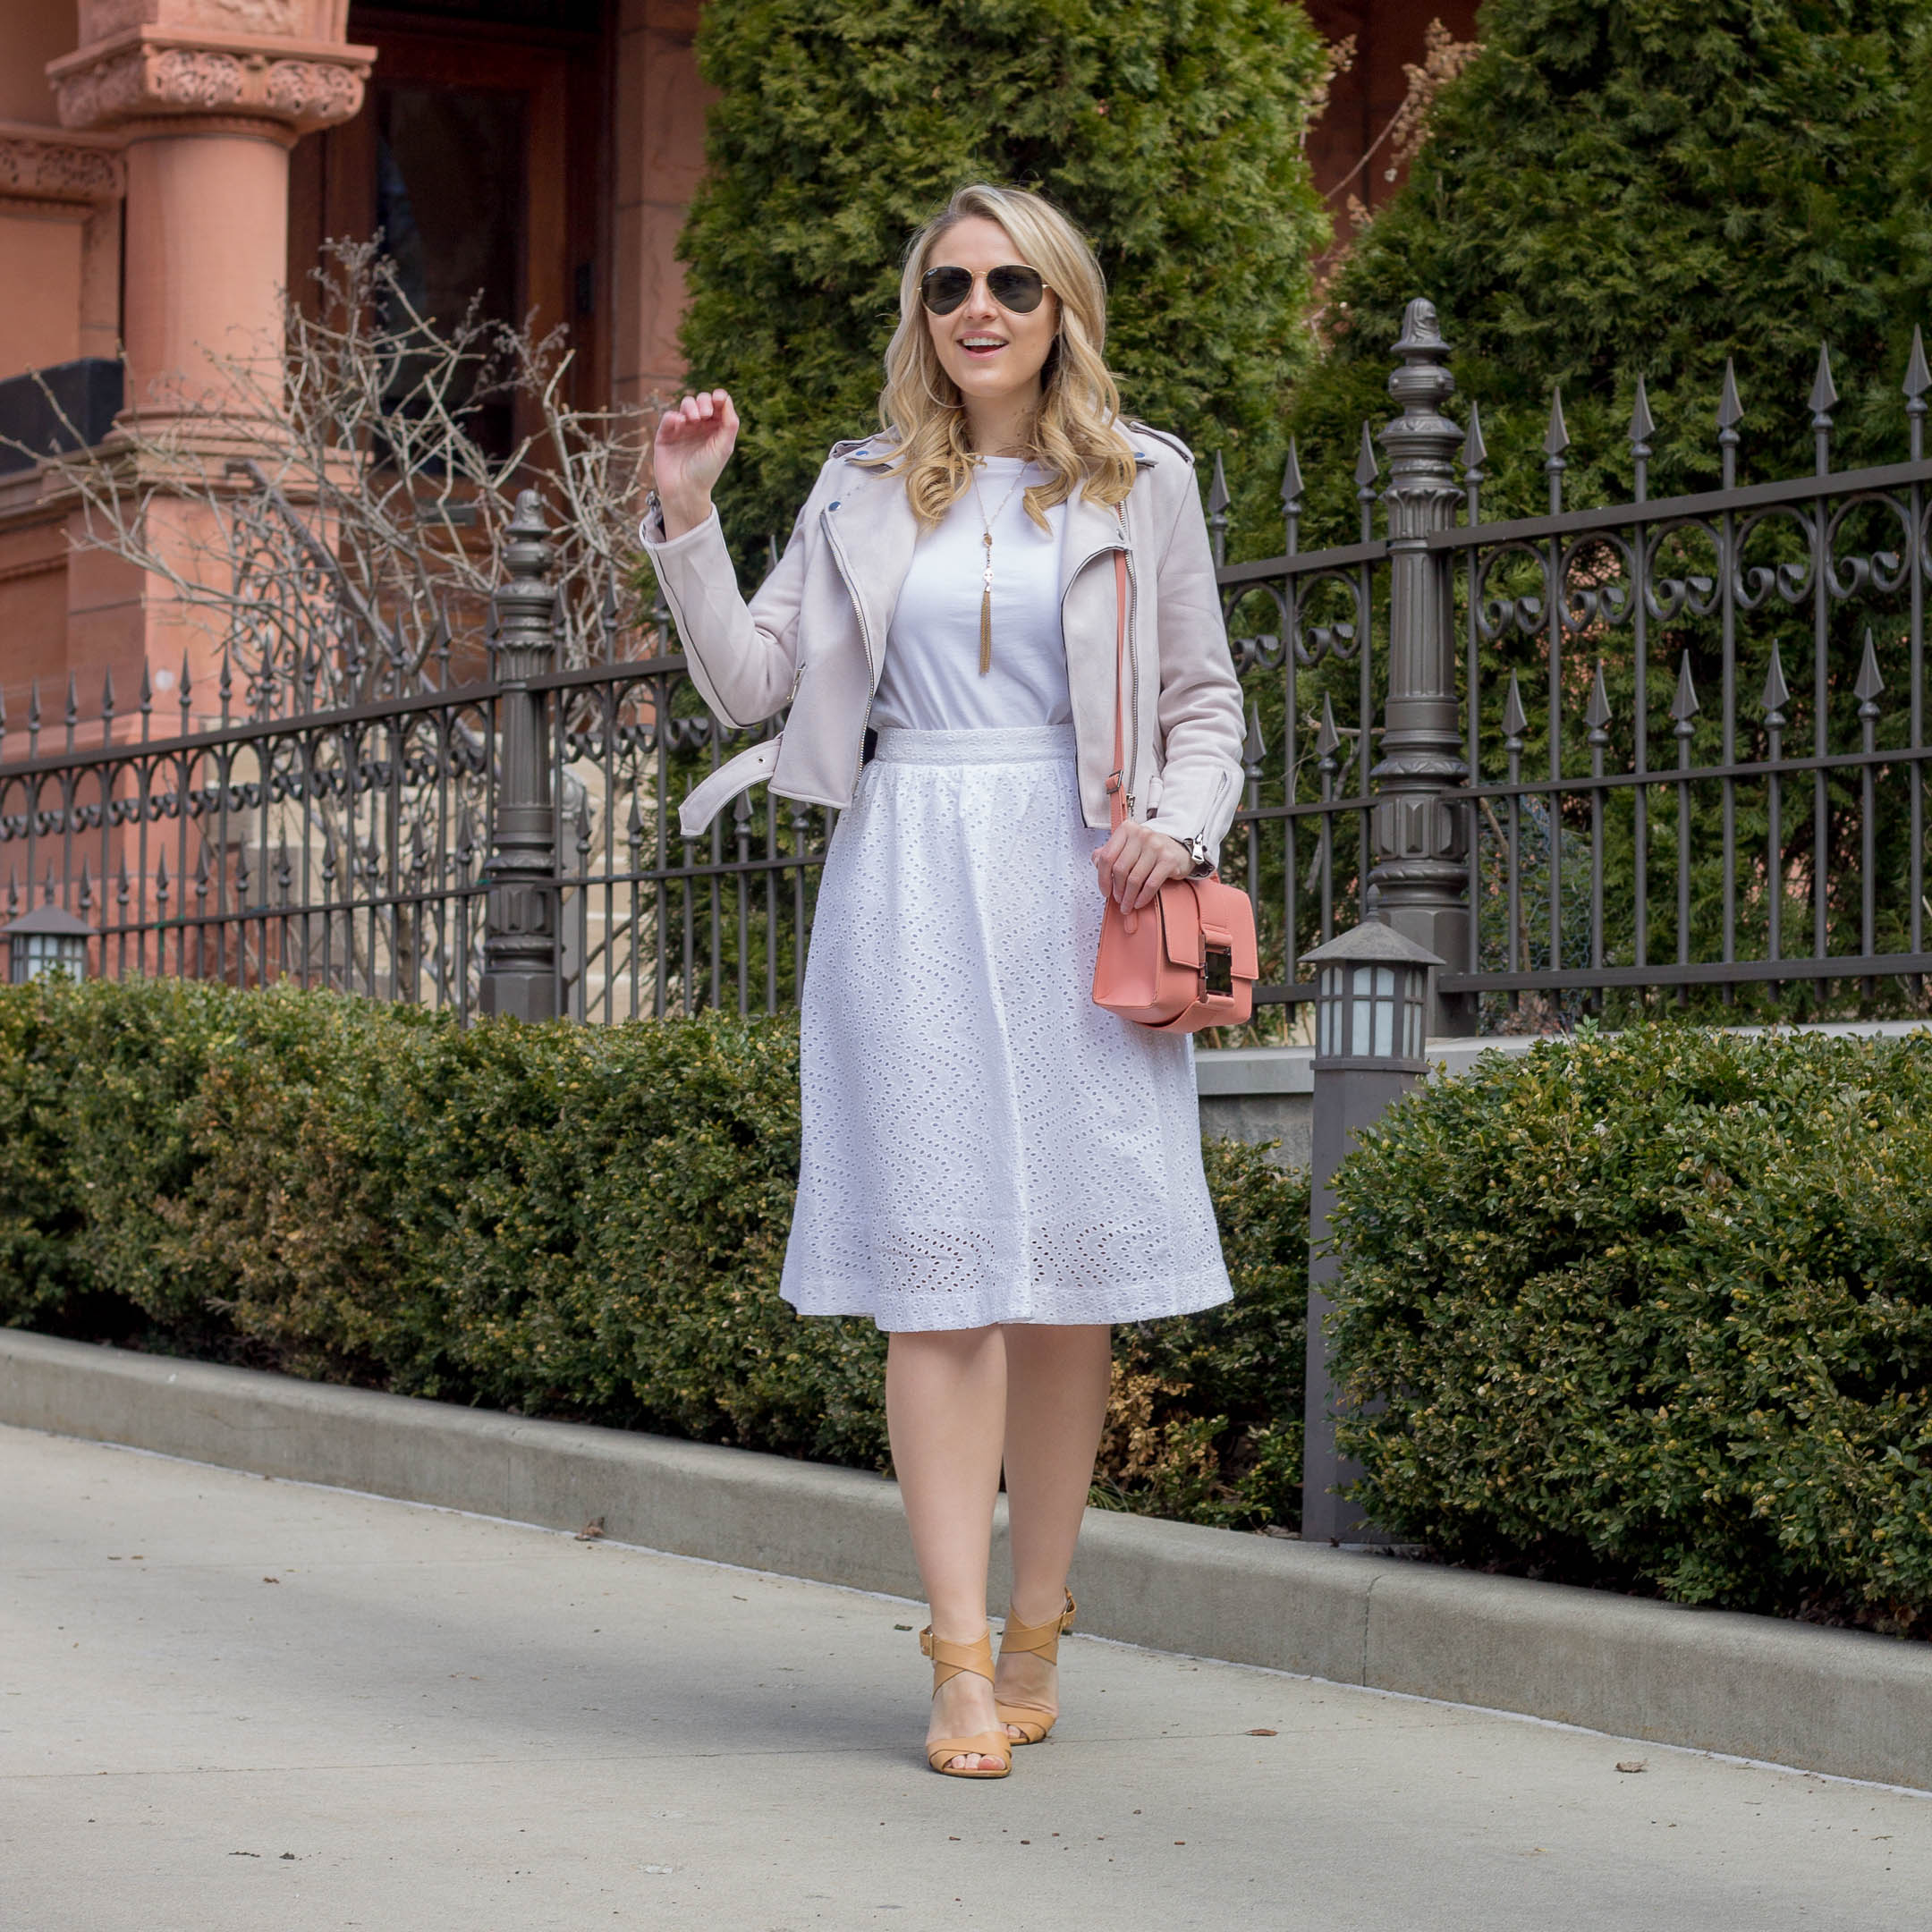 How to wear all white to the office and look chic